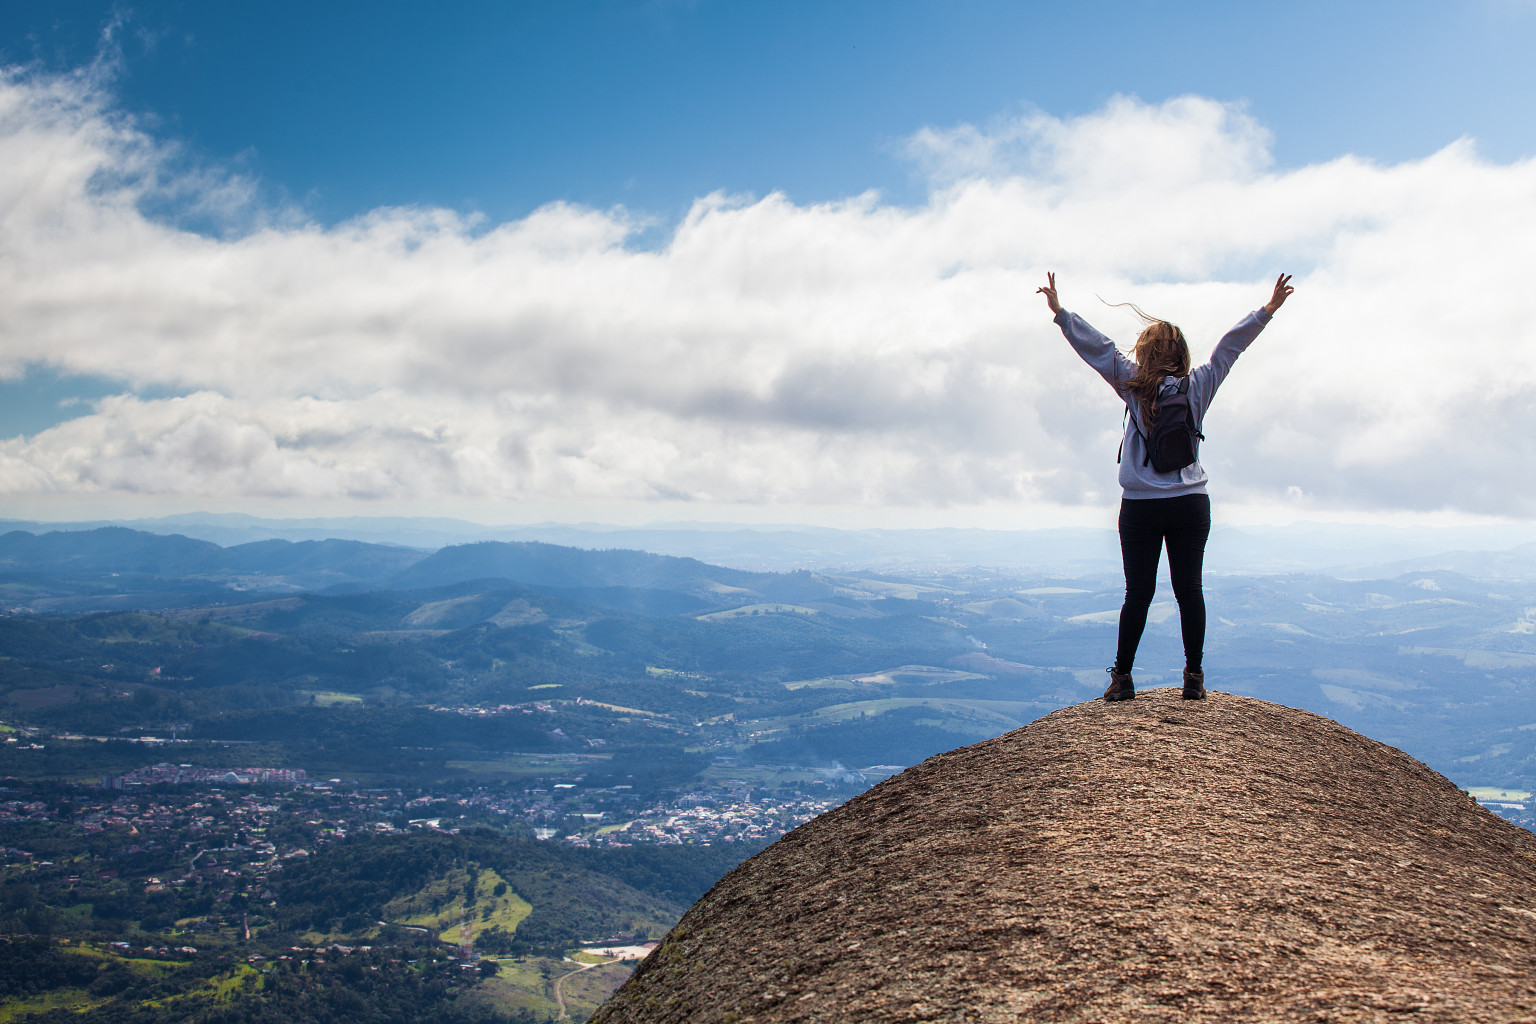 Happiness - Girl on the top of a rock / mountain